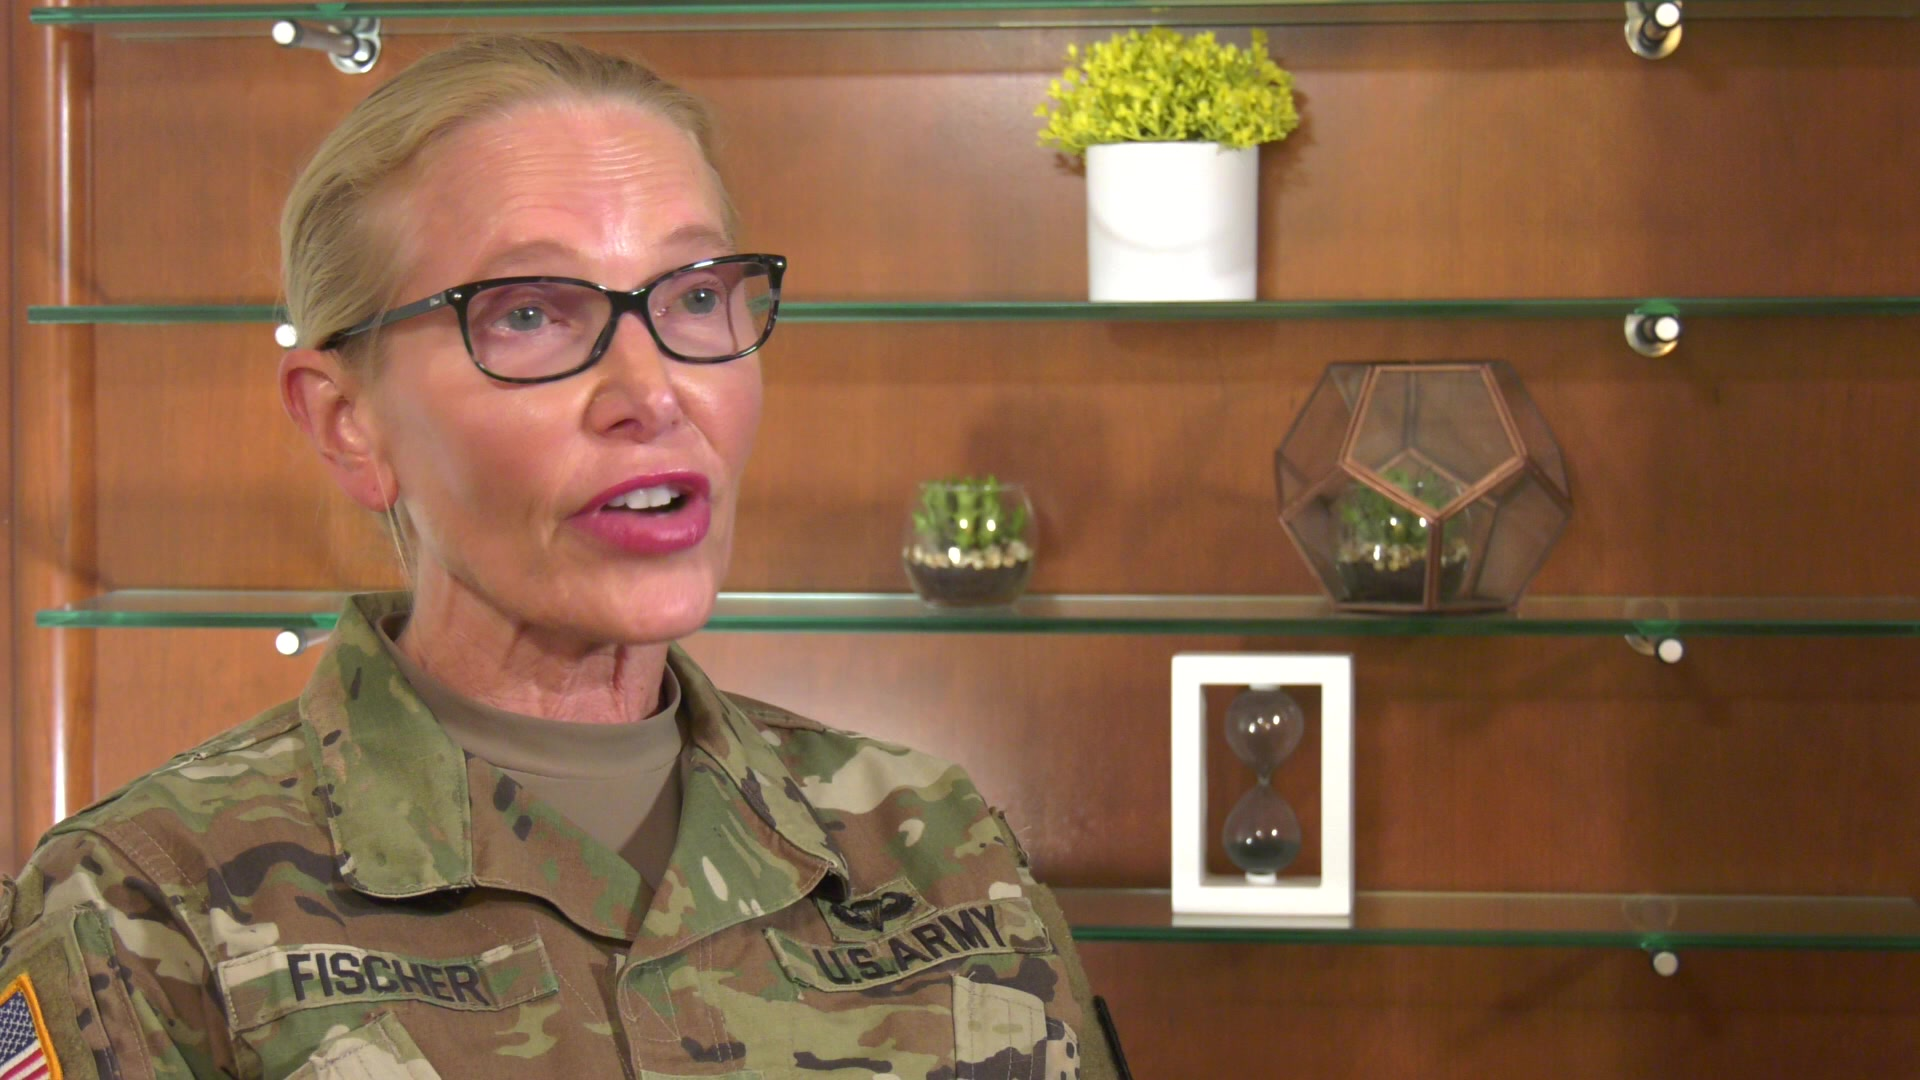 Col. Mary Fischer, Command Surgeon for the 377th Theater Sustainment Command and practicing physician in her civilian capacity, discusses her thought on the safety, effectiveness and importance of the COVID-19 vaccine.